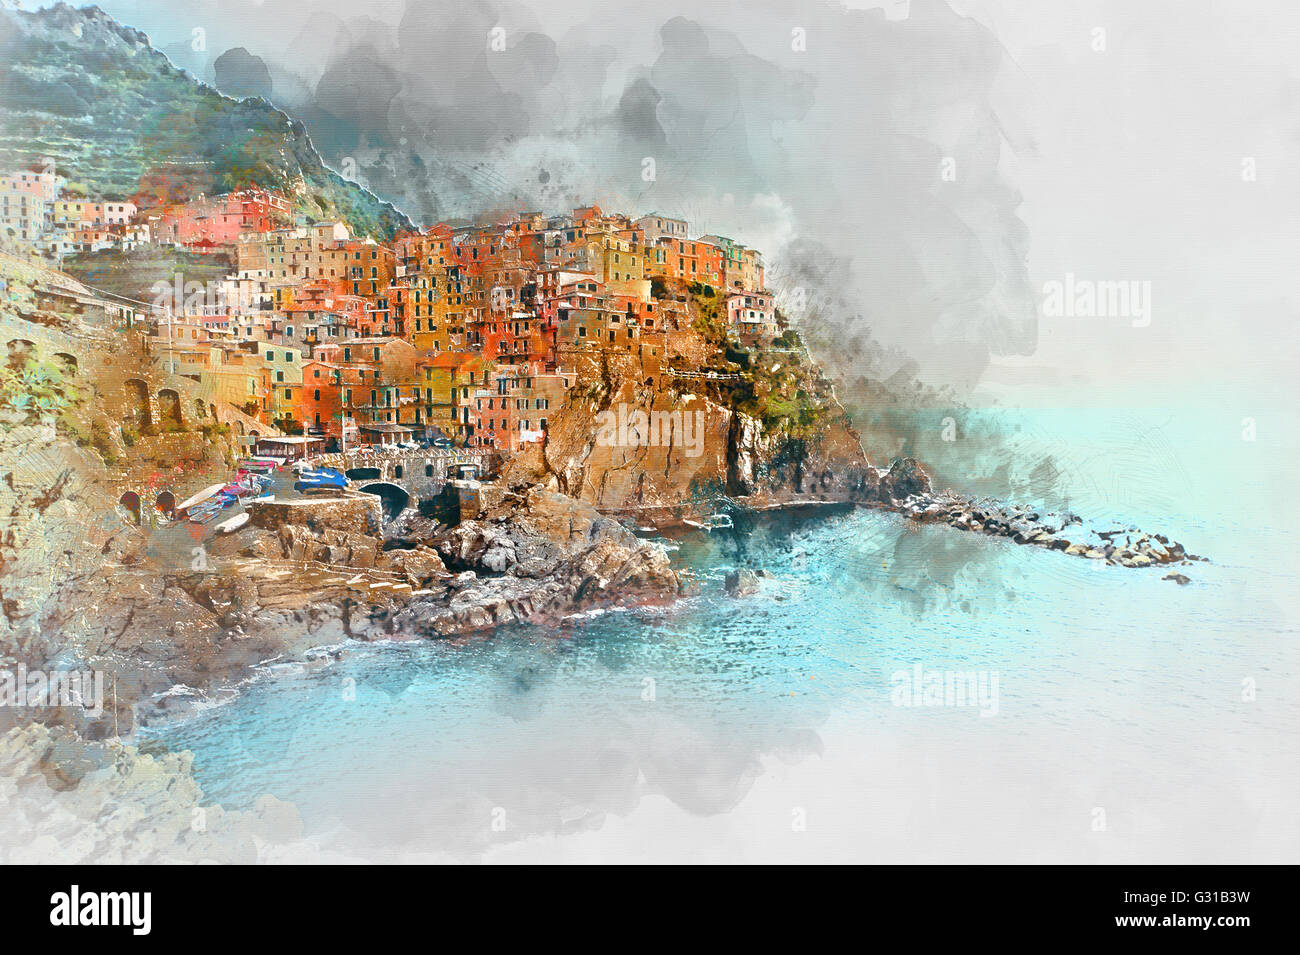 Digital watercolor painting of Manarola. Manarola is a small town in the province of La Spezia, Liguria, northern - Stock Image